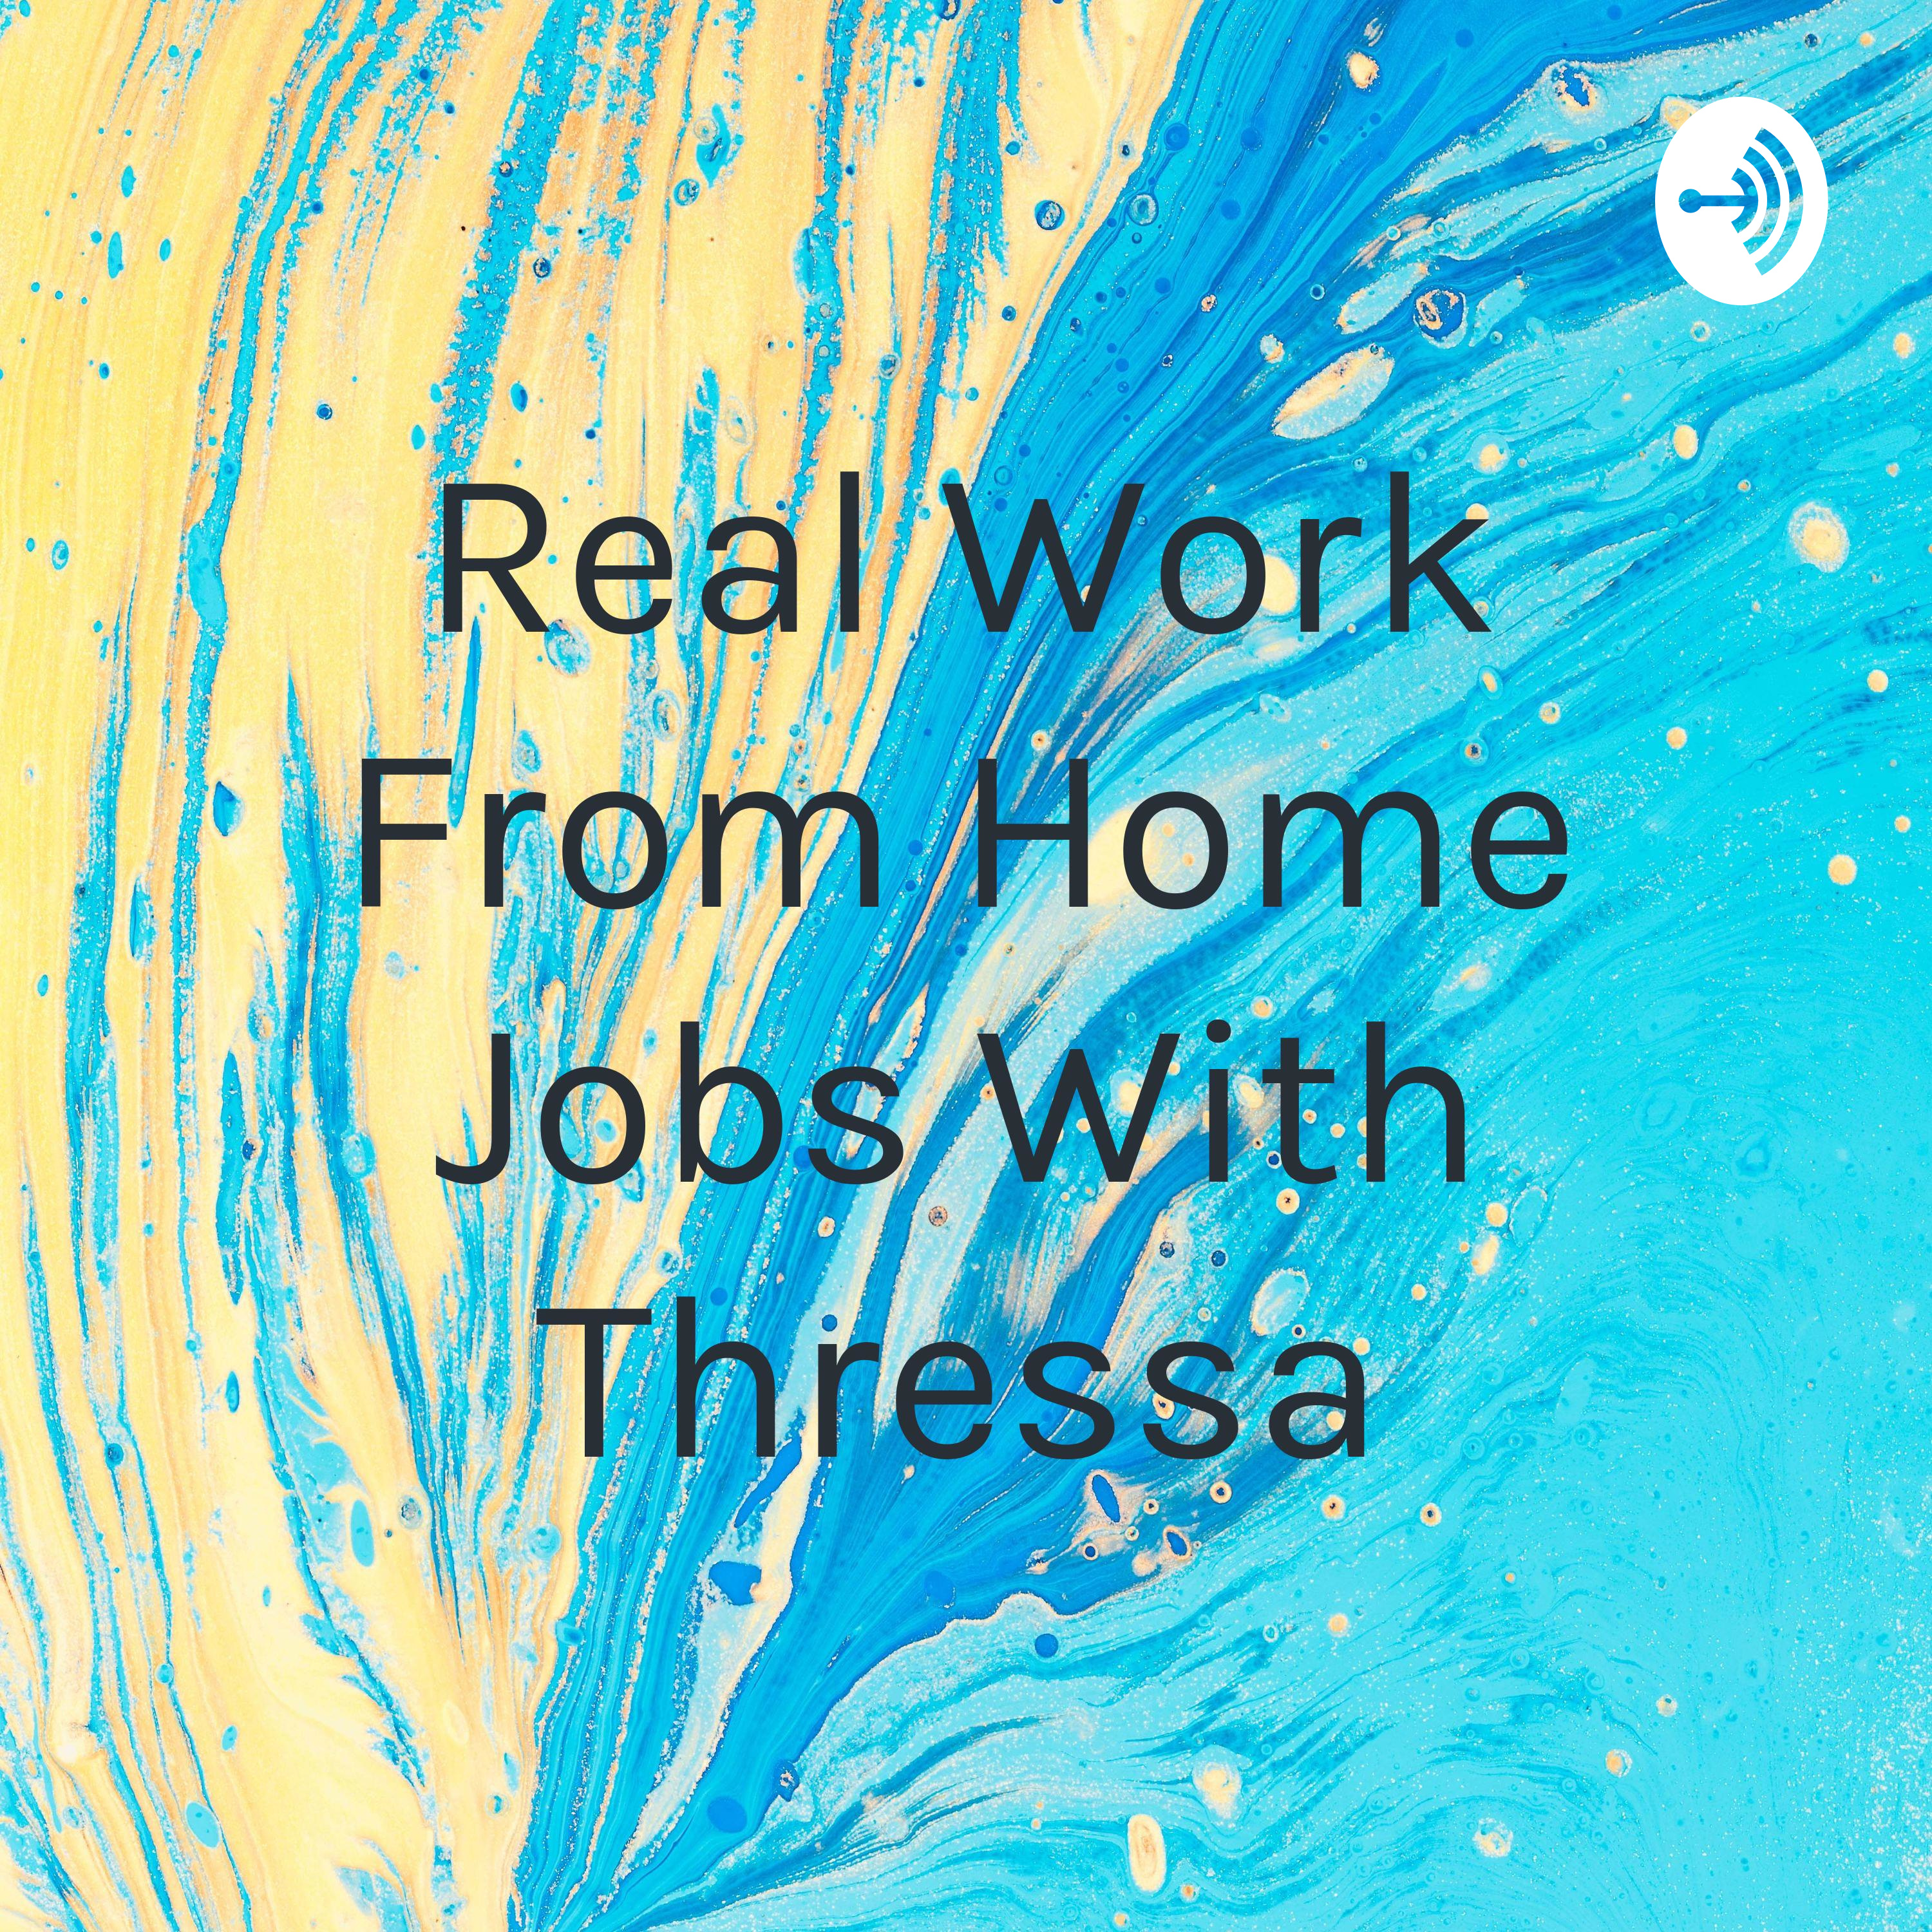 Real Work From Home Jobs With Thressa